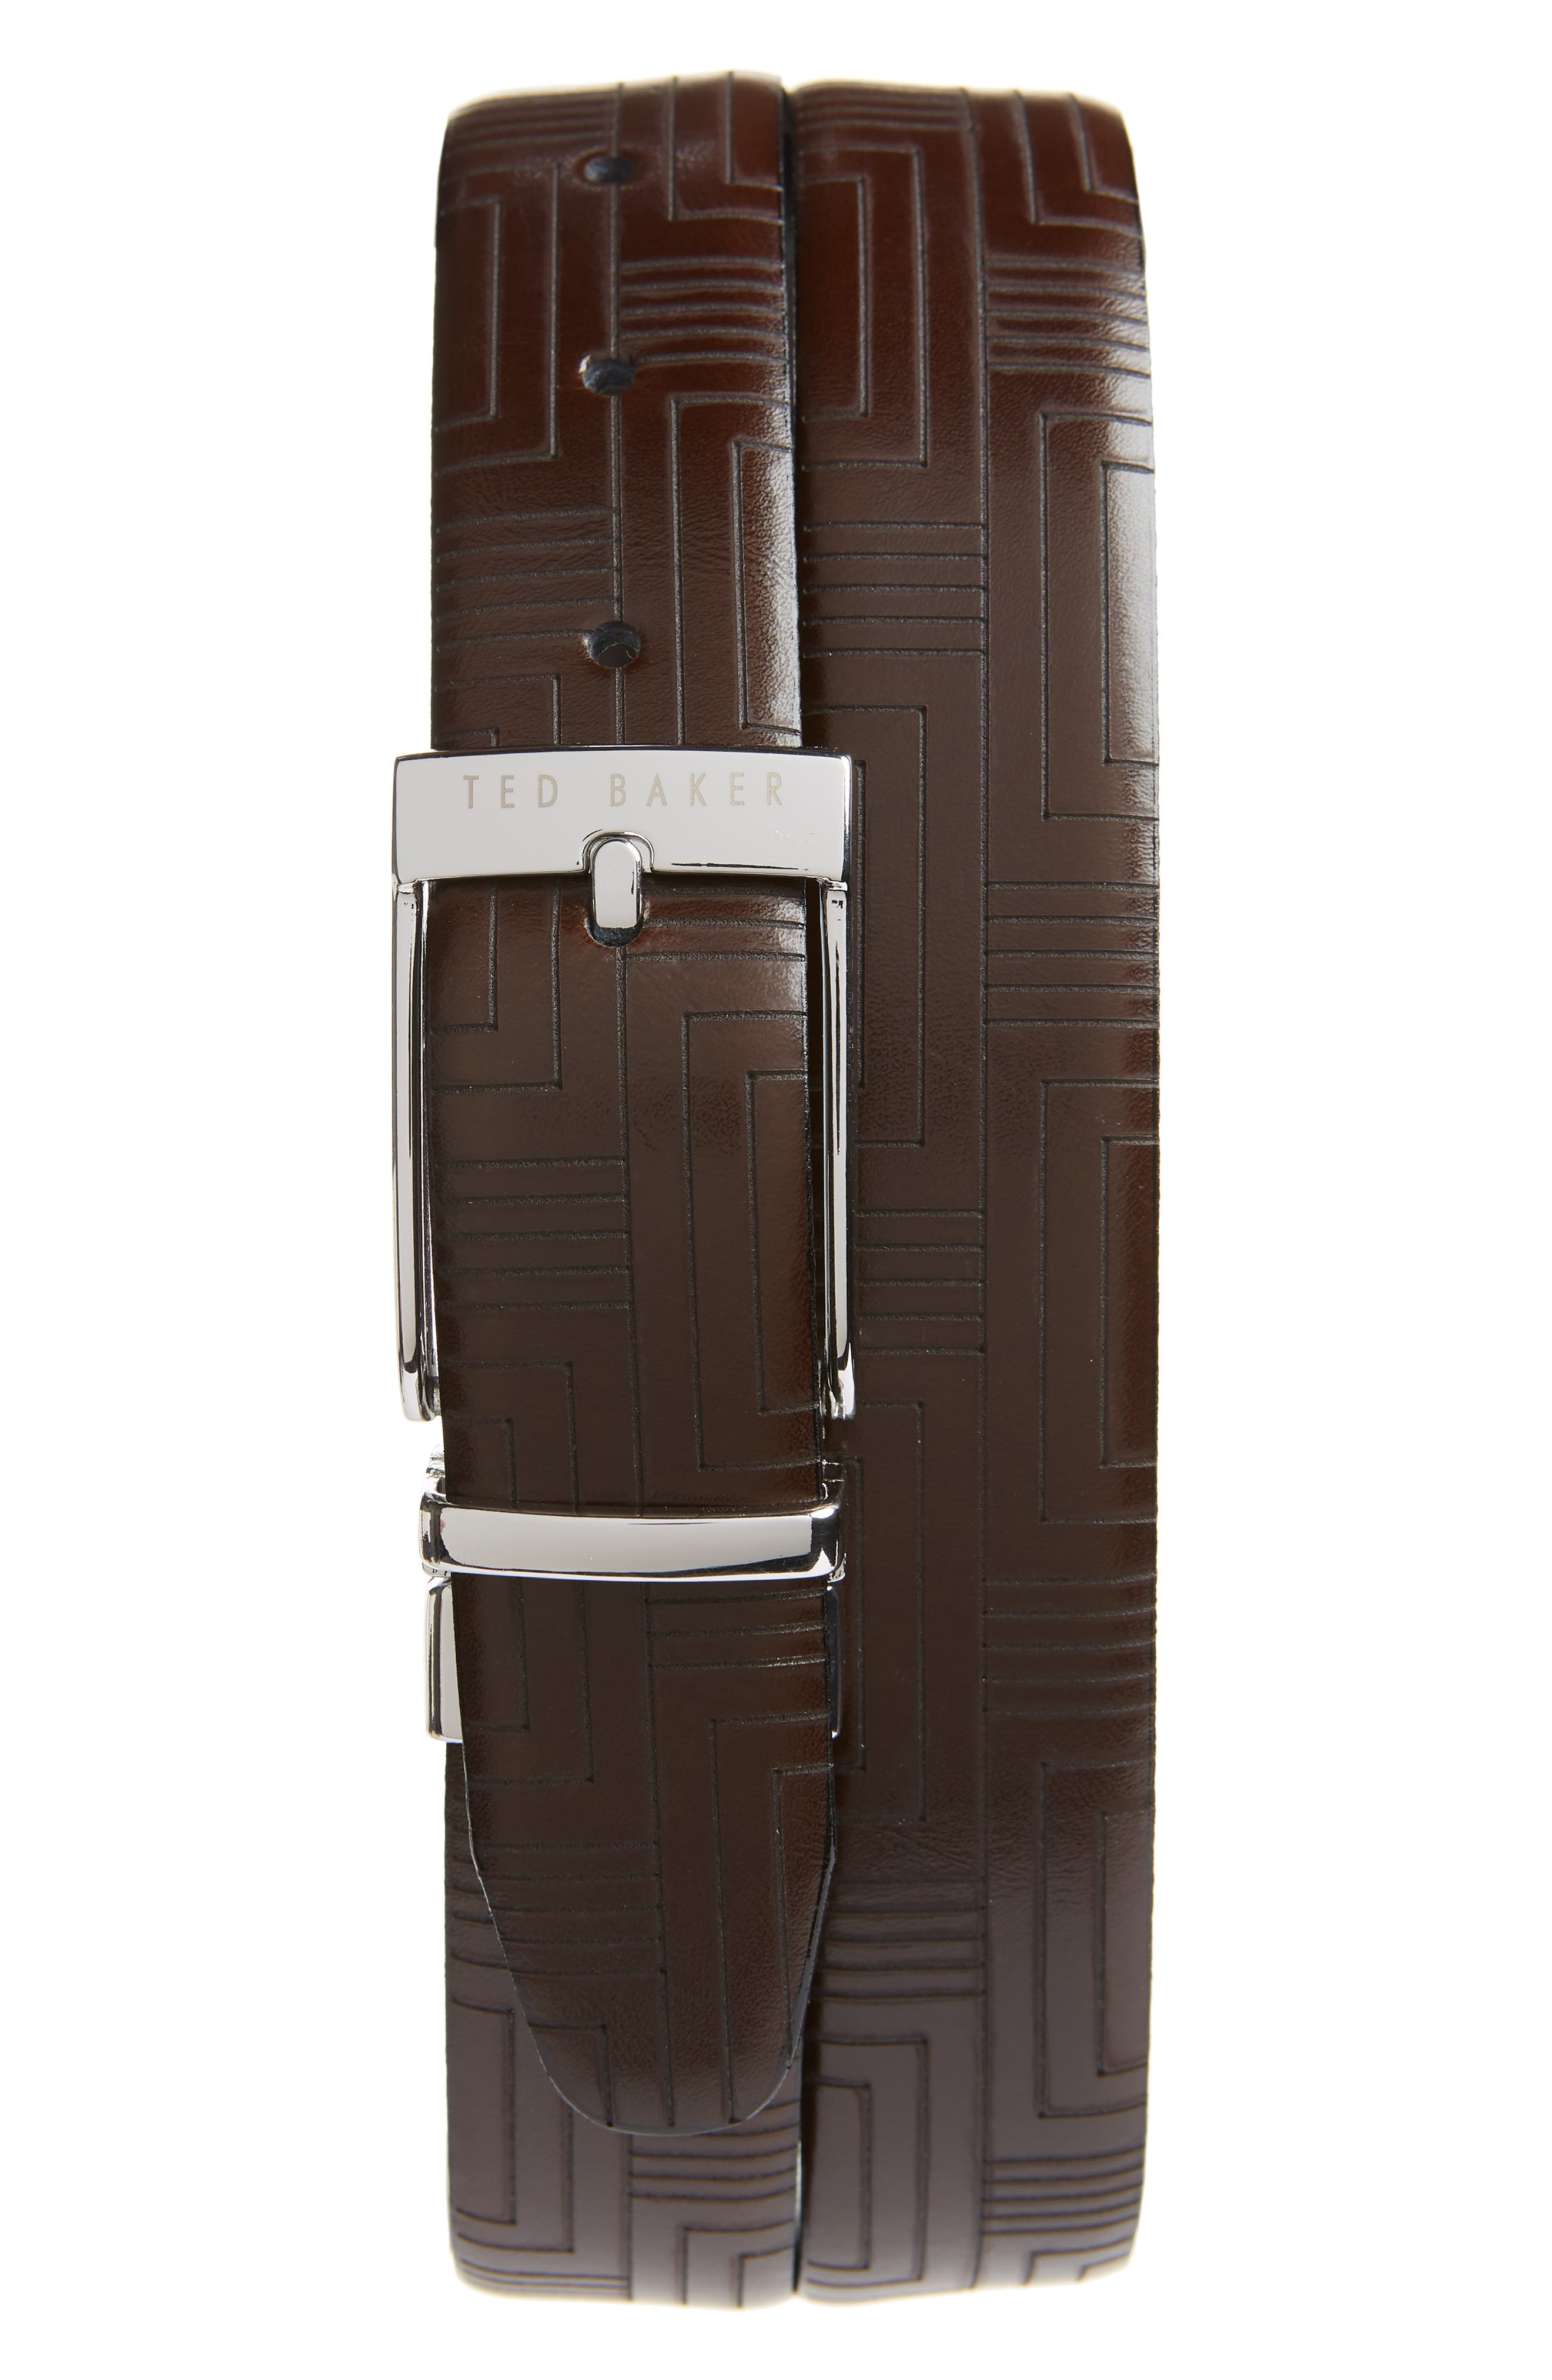 Ted Baker London Reversible Leather Belt, Chocolate